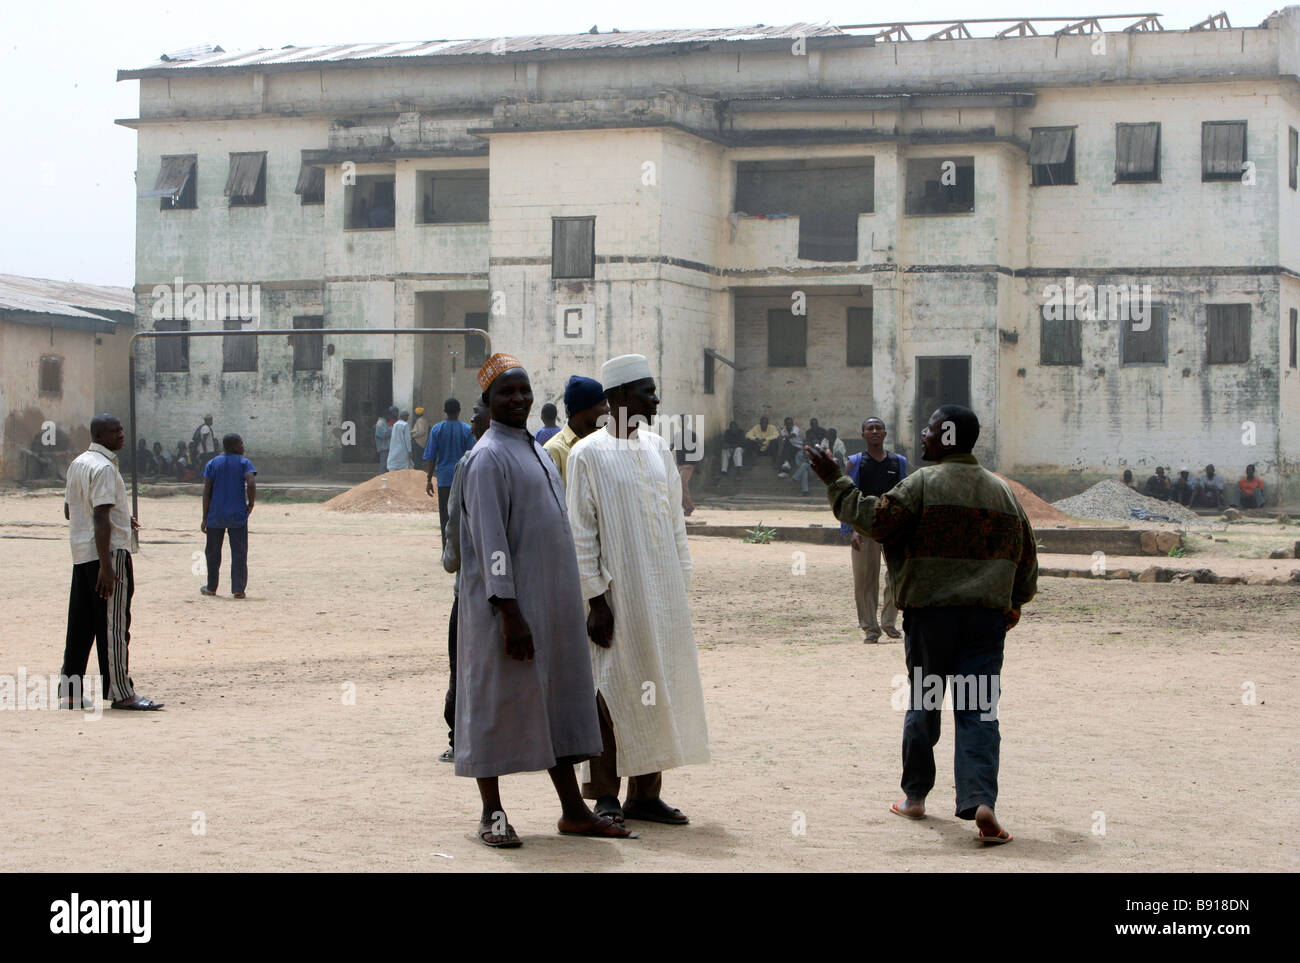 Nigeria: court way in the prison of Jos - Stock Image